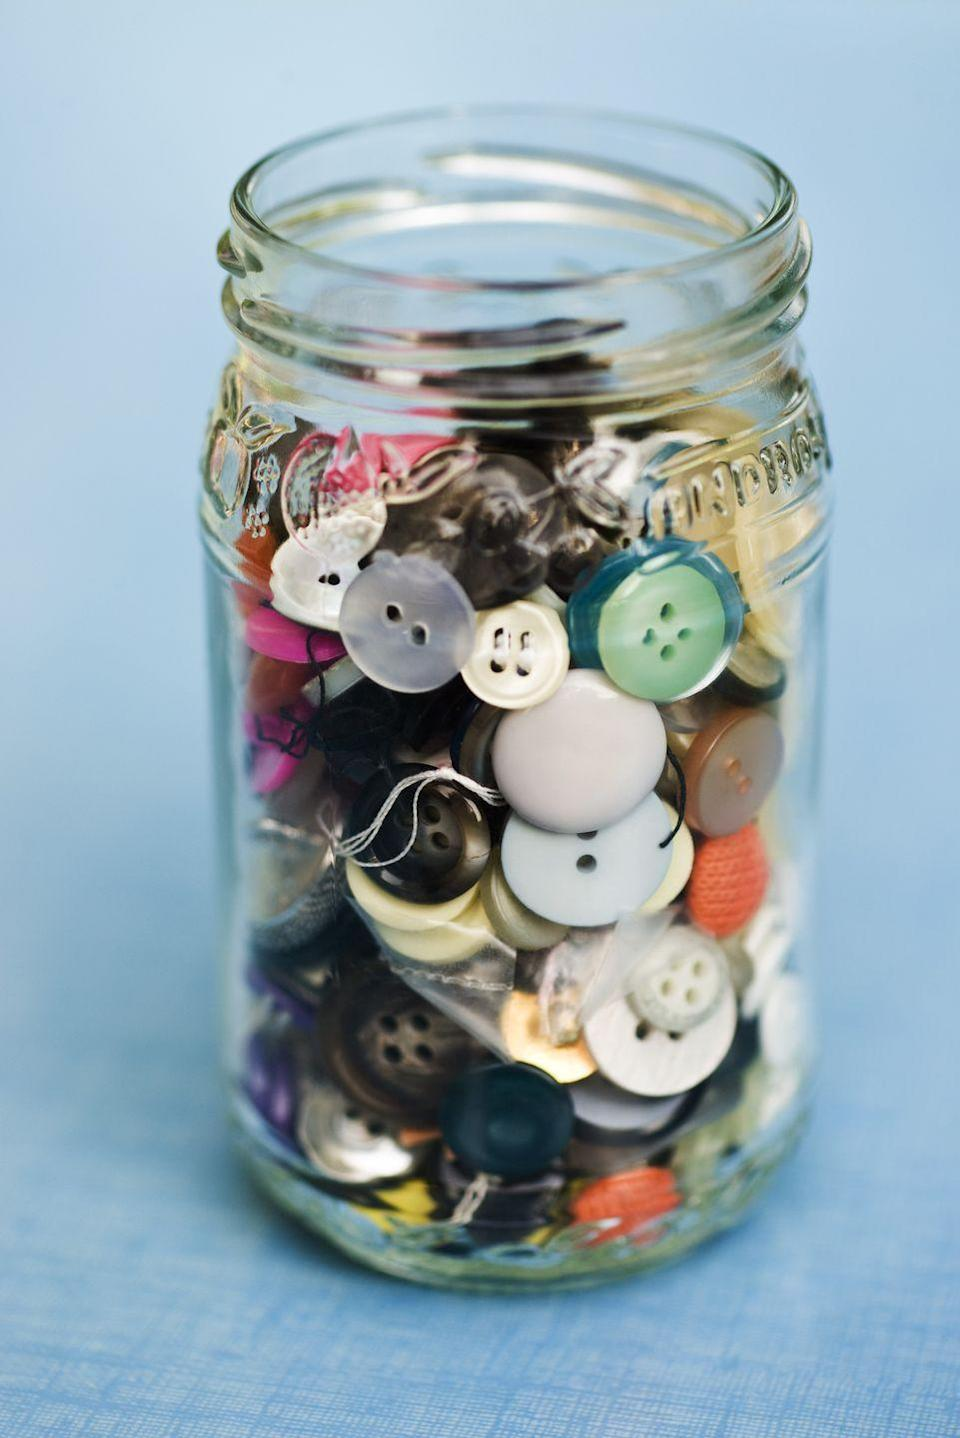 """<p>Unless of course you plan to use those abandoned buttons for a <a href=""""https://www.countryliving.com/diy-crafts/how-to/a42086/diy-button-art/"""" rel=""""nofollow noopener"""" target=""""_blank"""" data-ylk=""""slk:cute craft"""" class=""""link rapid-noclick-resp"""">cute craft</a> or have them prettily organized in a <a href=""""https://www.countryliving.com/shopping/gifts/g2057/mason-jar-gift-ideas/"""" rel=""""nofollow noopener"""" target=""""_blank"""" data-ylk=""""slk:mason jar"""" class=""""link rapid-noclick-resp"""">mason jar</a>, those stray buttons lingering in old coat pockets aren't doing you any favors. </p>"""